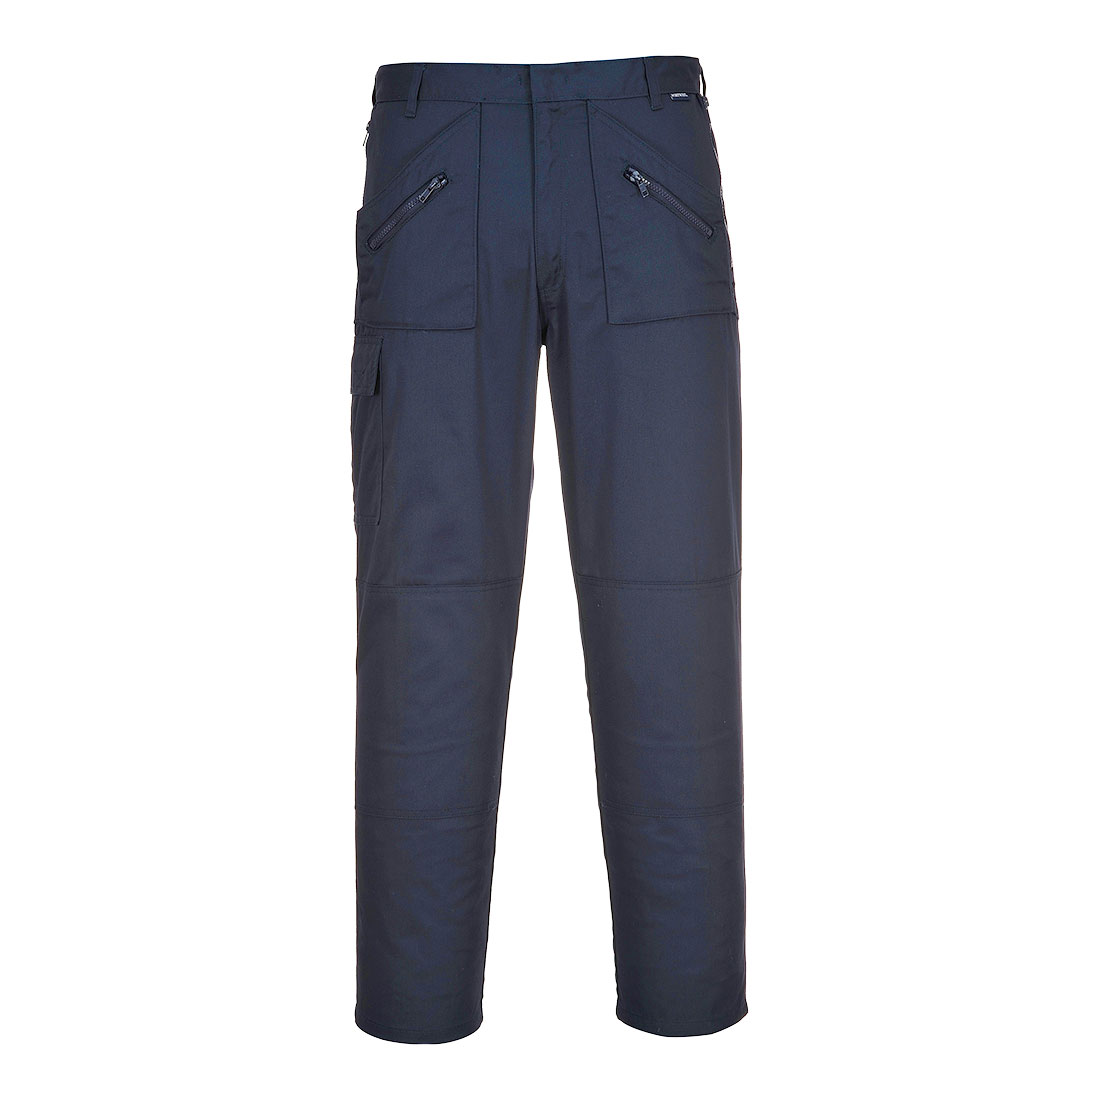 Action Trousers Navy 30R